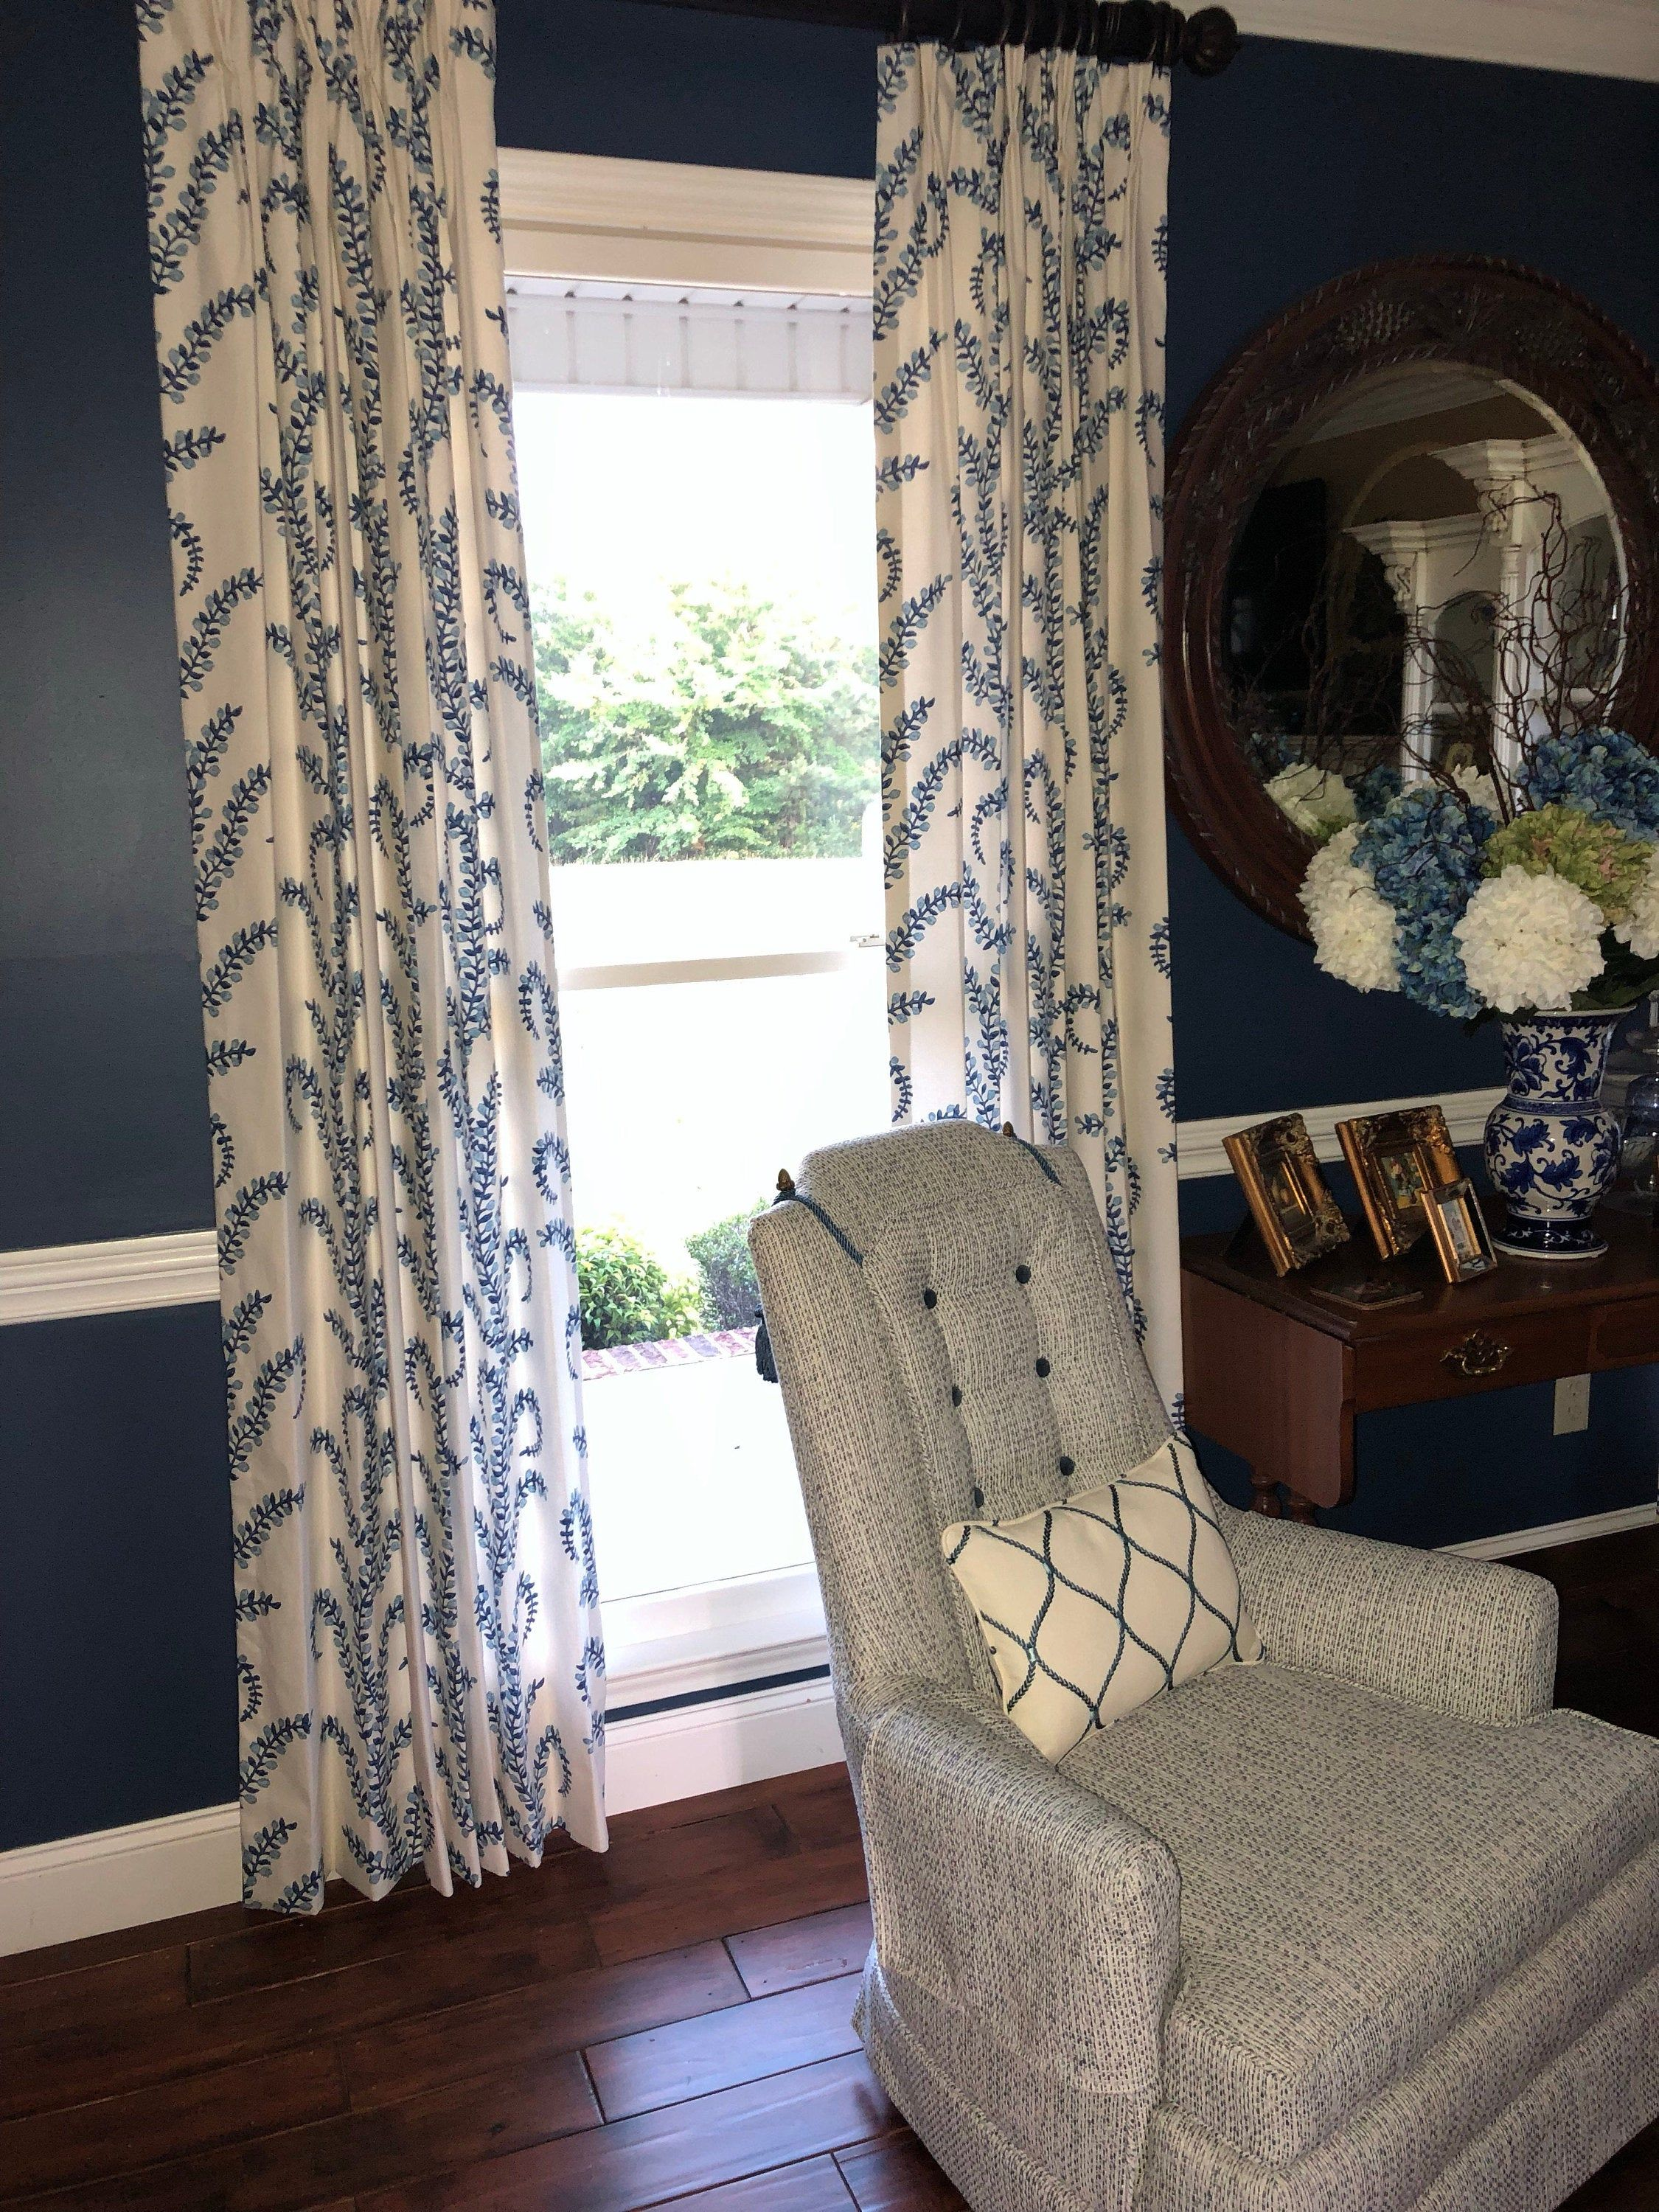 Prasana Bluebell Linen Lined Drapes Spa Resort Colors Window Panels Drapes Fully Lined Lined Draperies Custom Made Curtains Panel Custom Made Curtains Panel Curtains Pinch Pleat Curtains